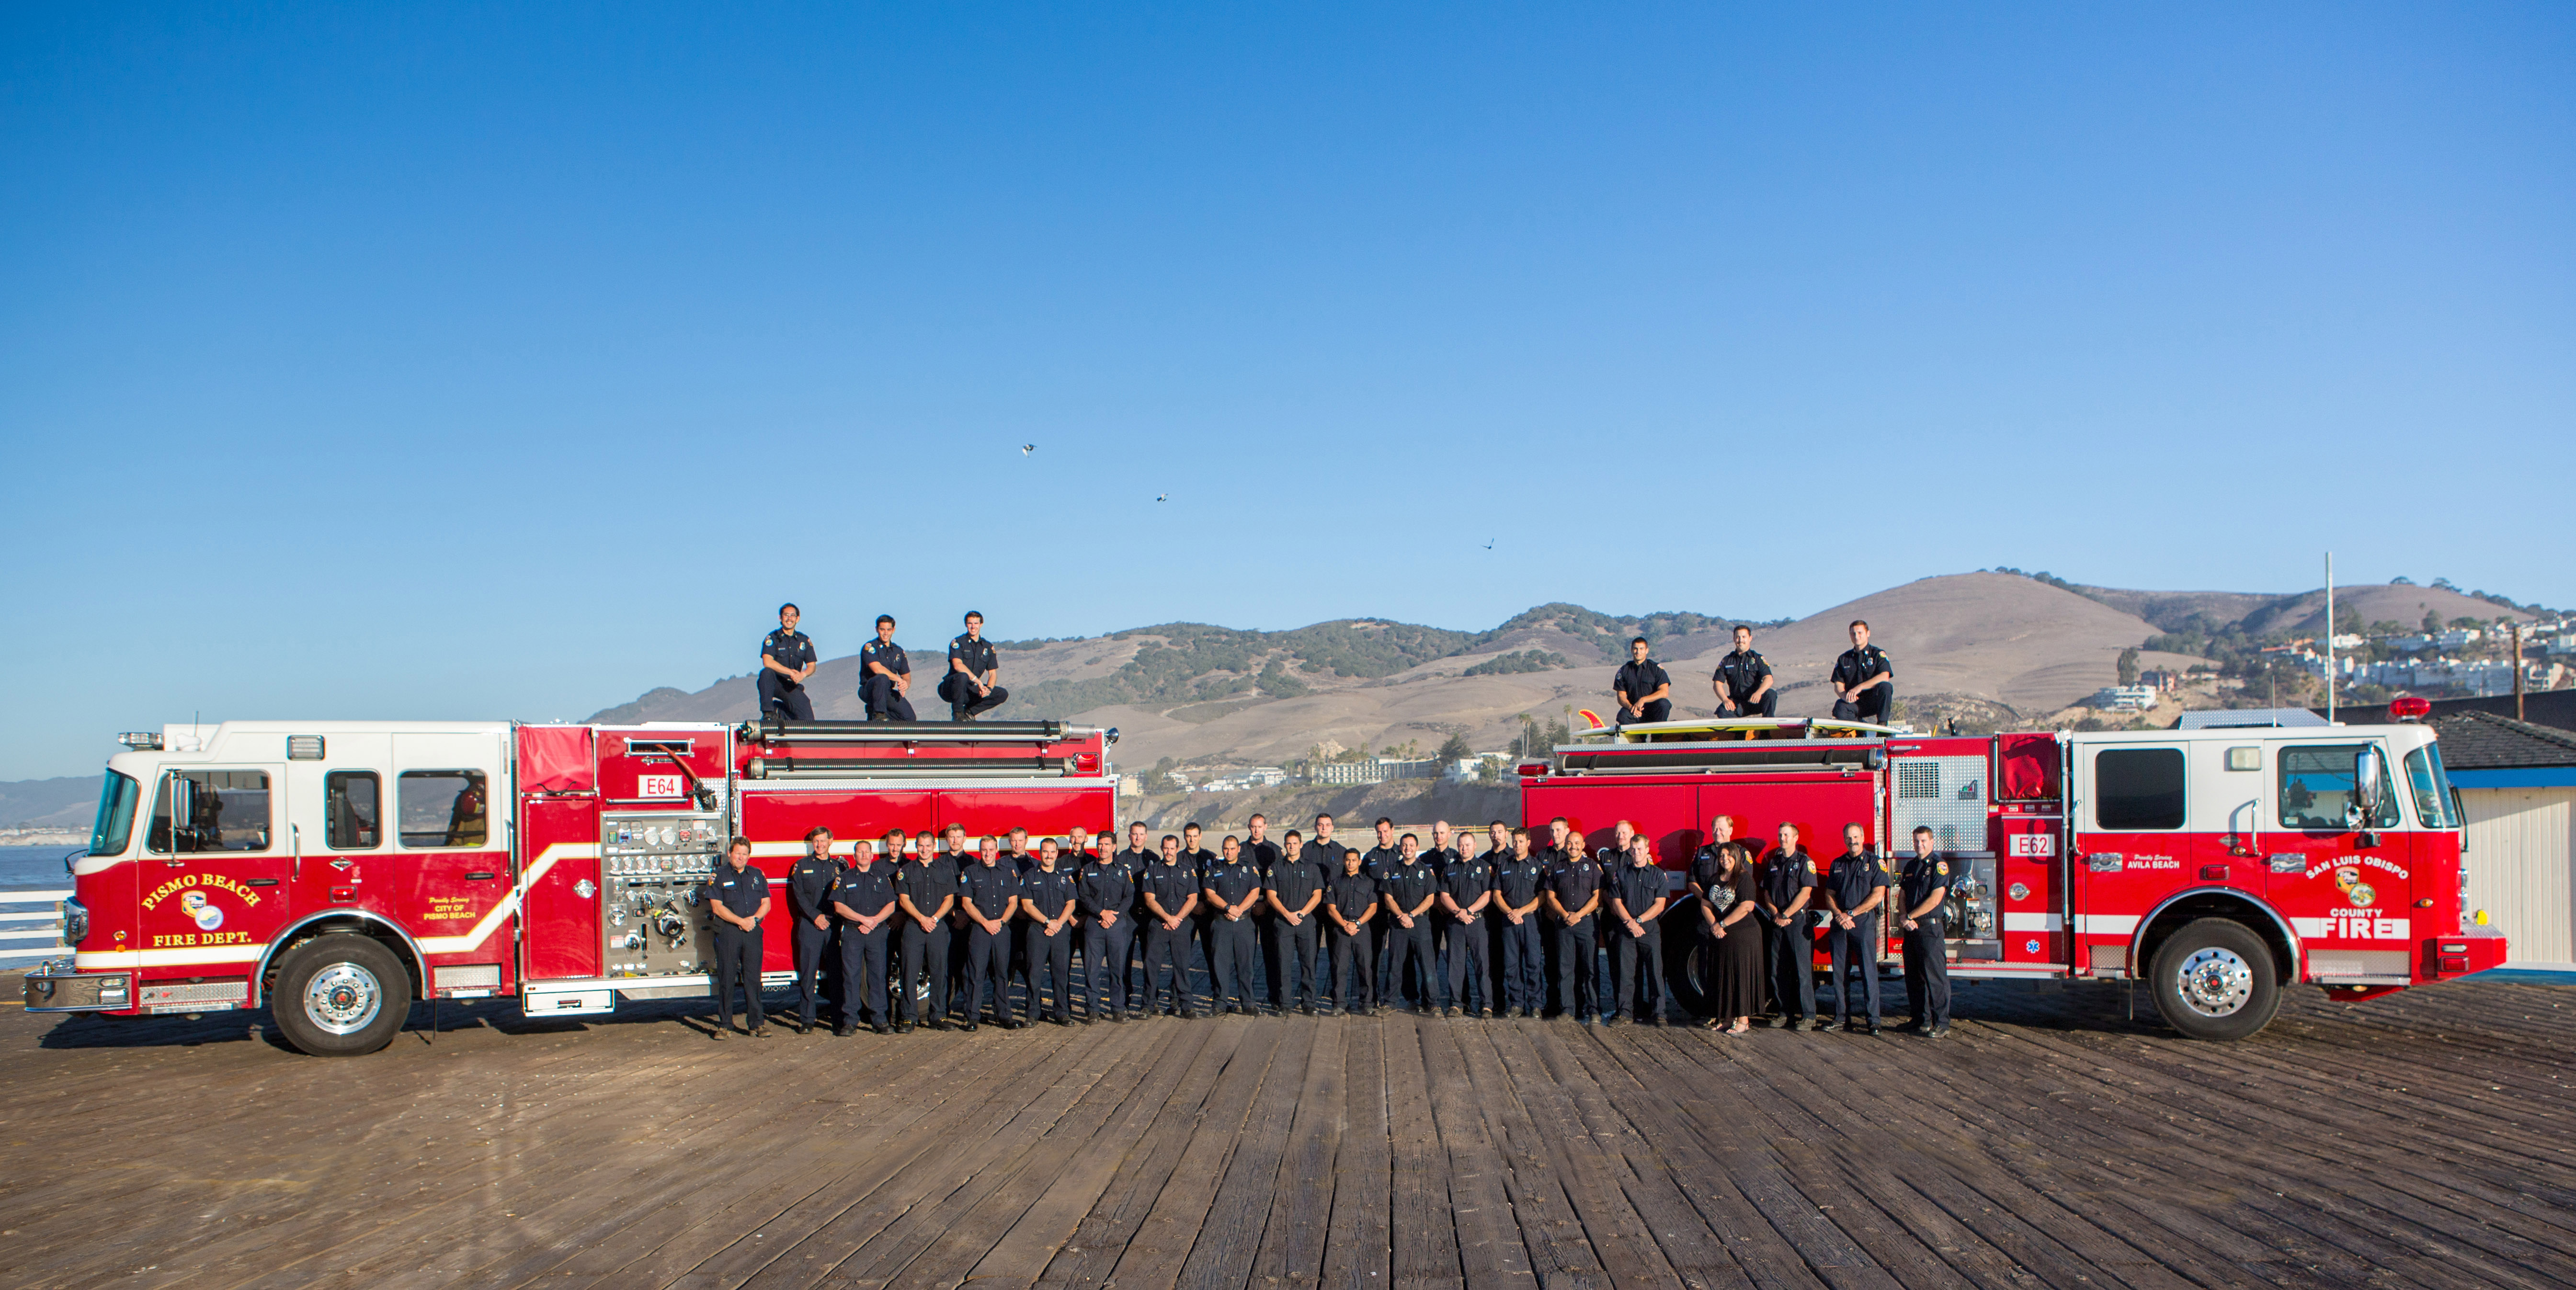 Firefighters line up in front of 2 fire trucks